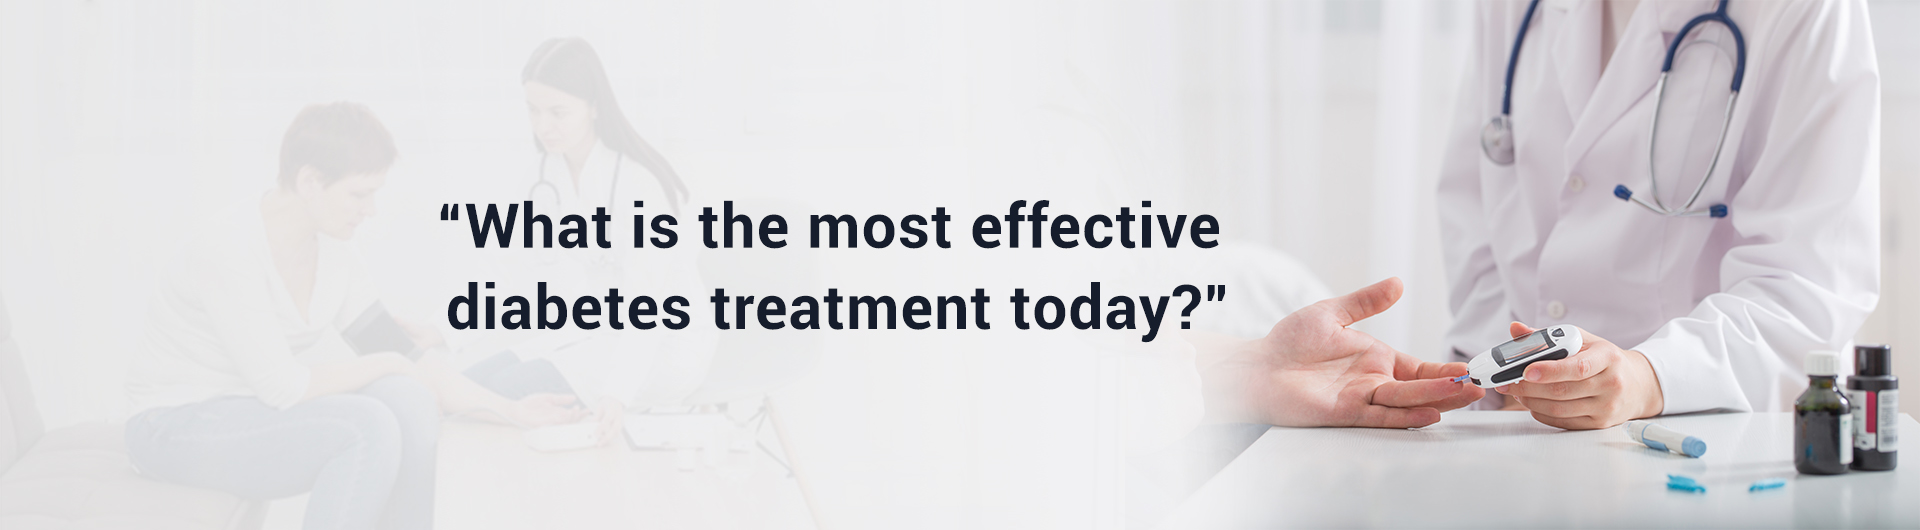 What is the most effective Diabetes Treatment today?